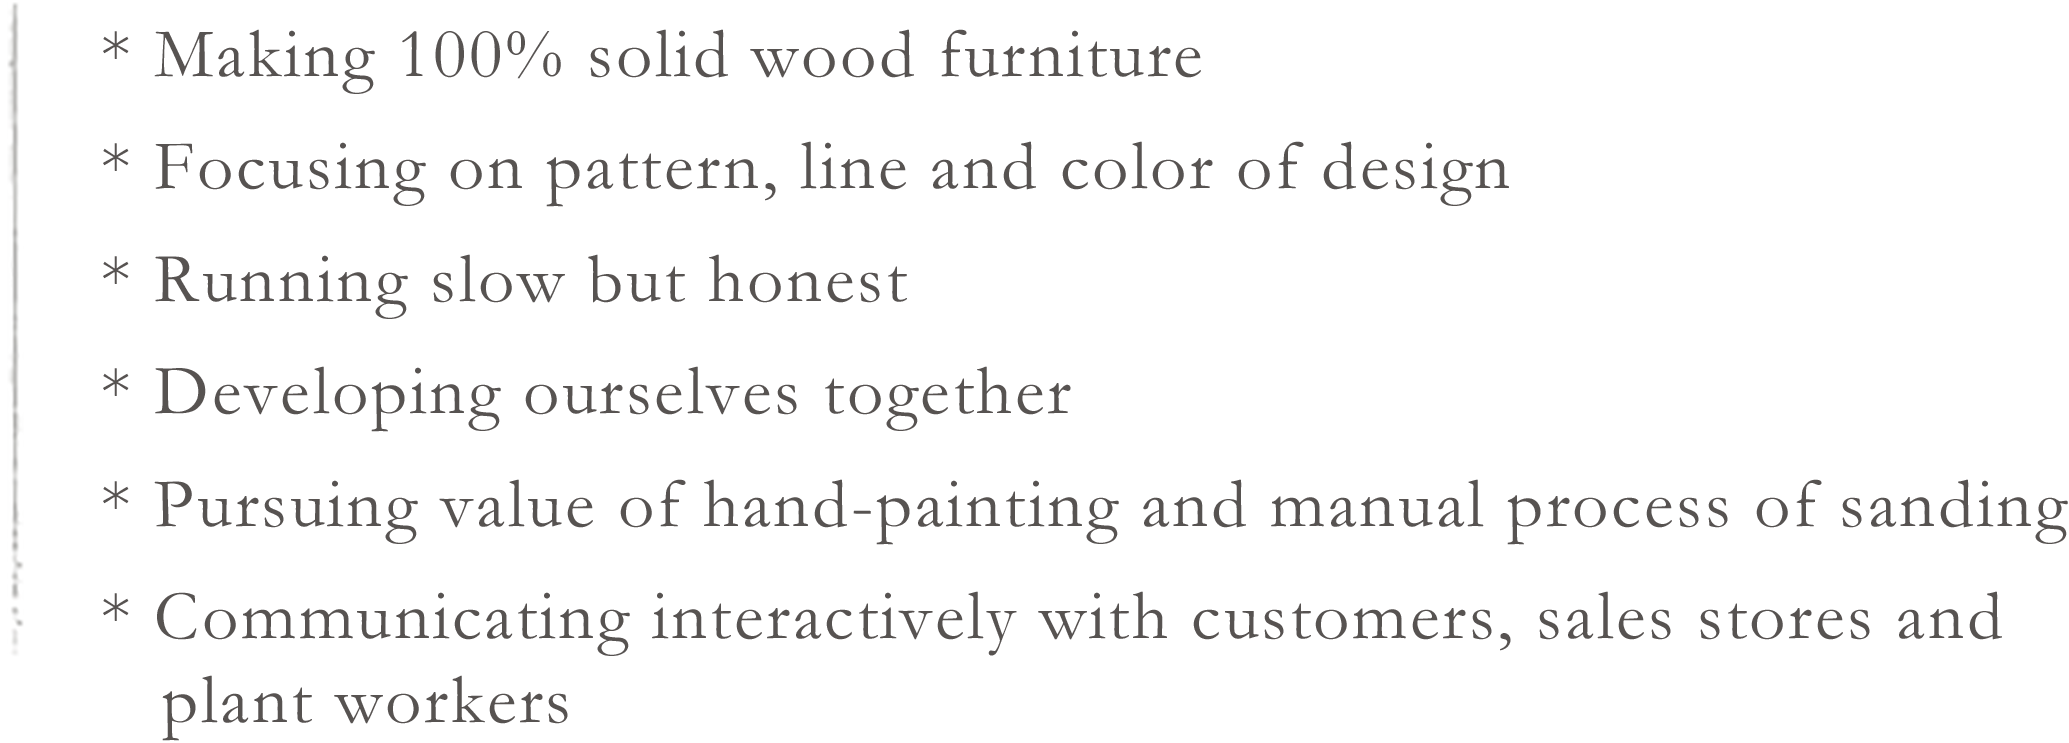 * Making 100% solid wood furniture * Focusing on pattern, line and color of design * Running slow but honest * Developing ourselves together * Pursuing value of hand-painting and manual process of sanding * Communicating interactively with customers, sales stores and plant workers